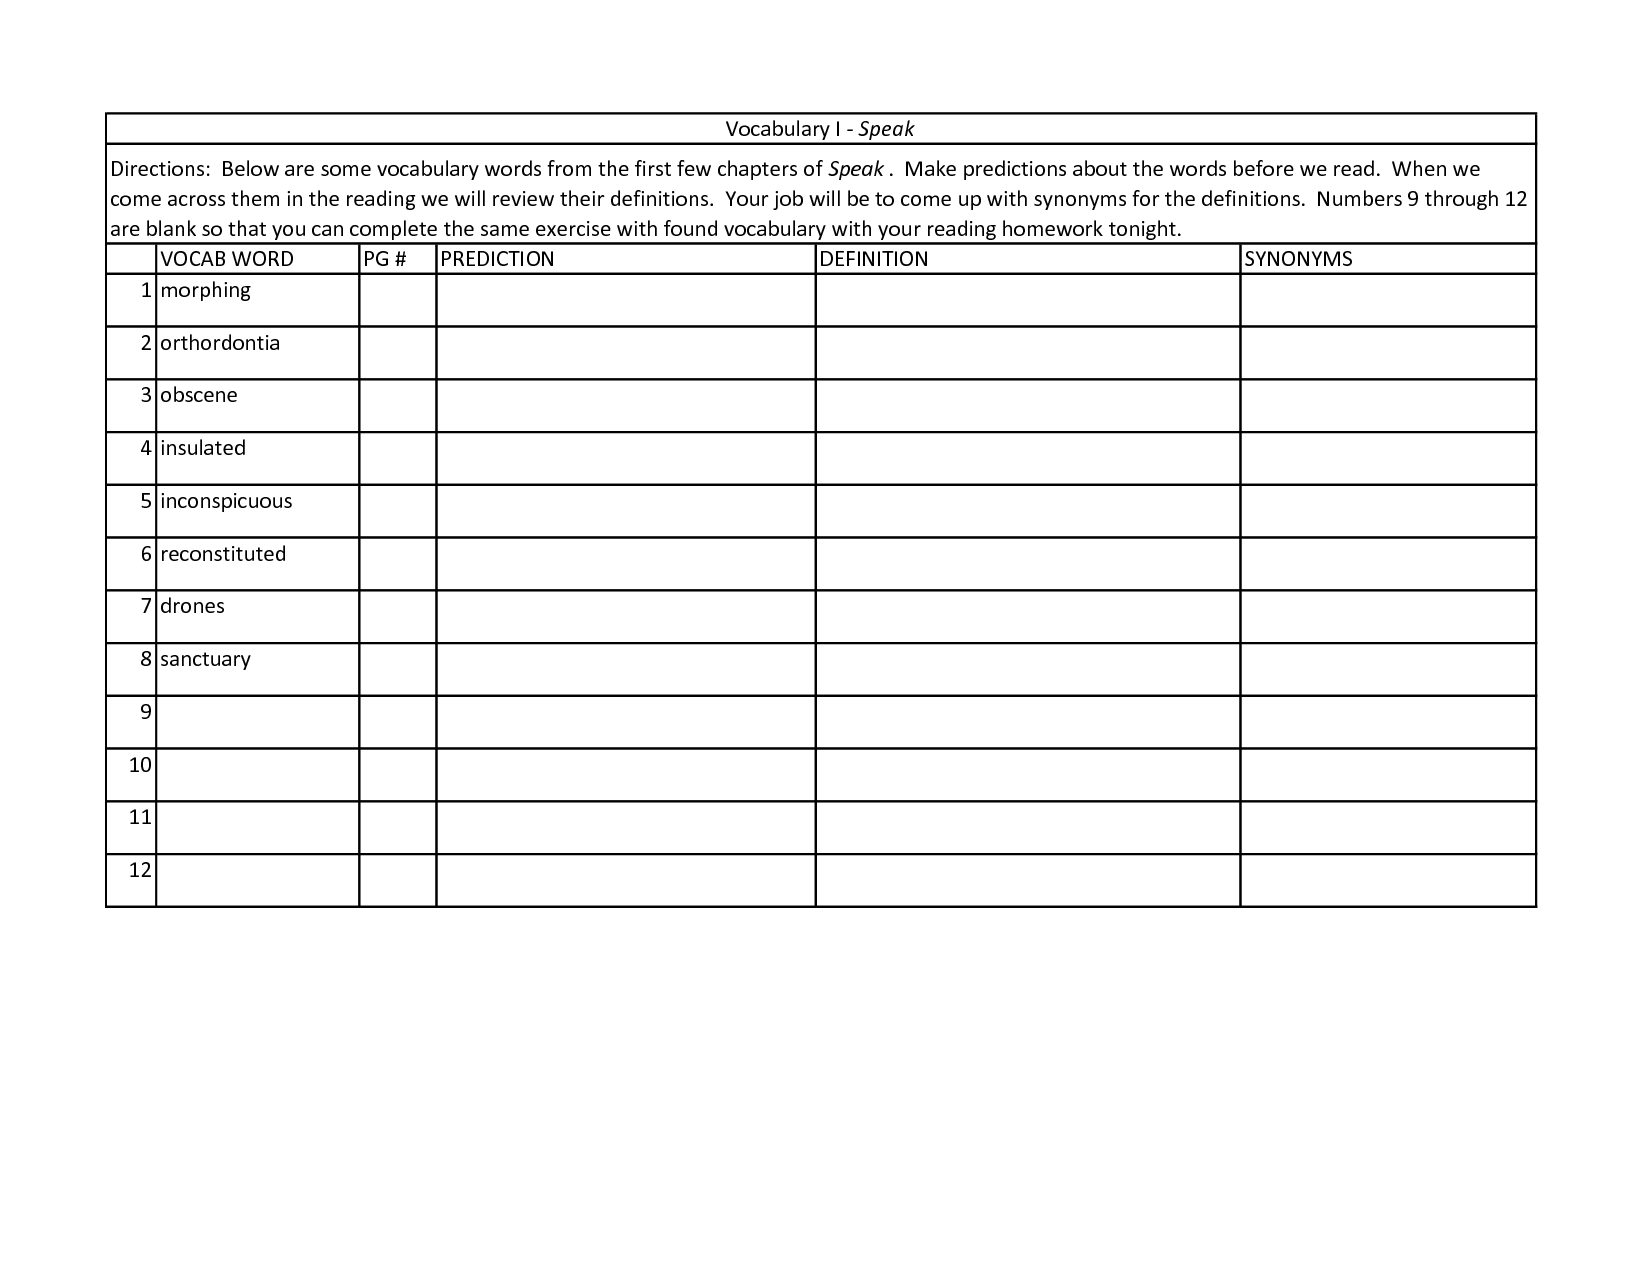 Blank Worksheet Templates For Word